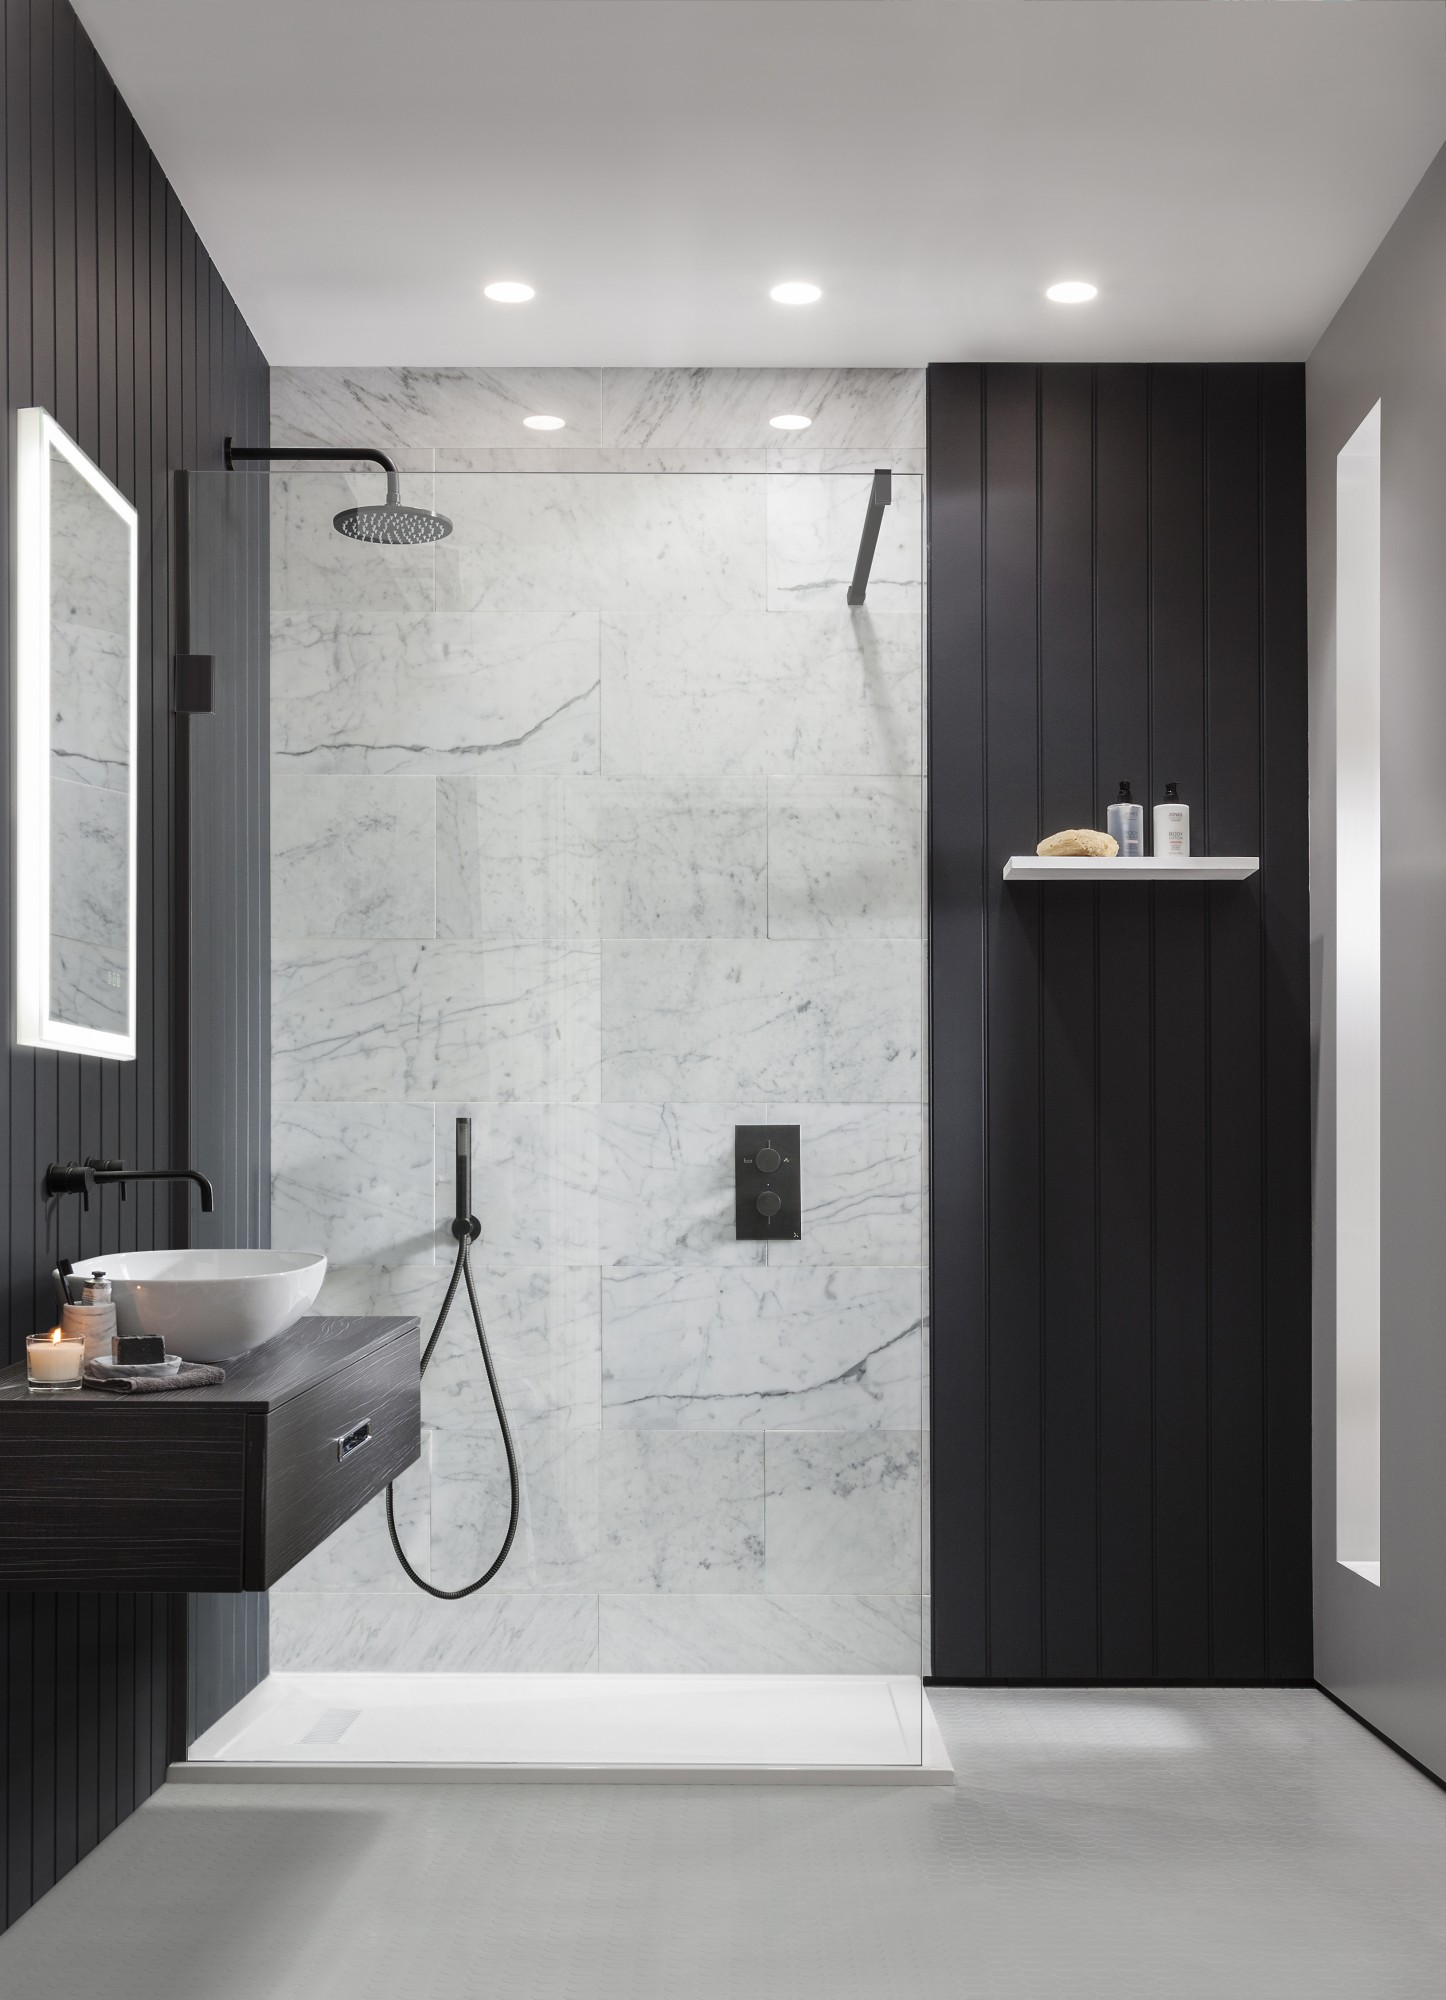 Take a look at these black bathroom interiors